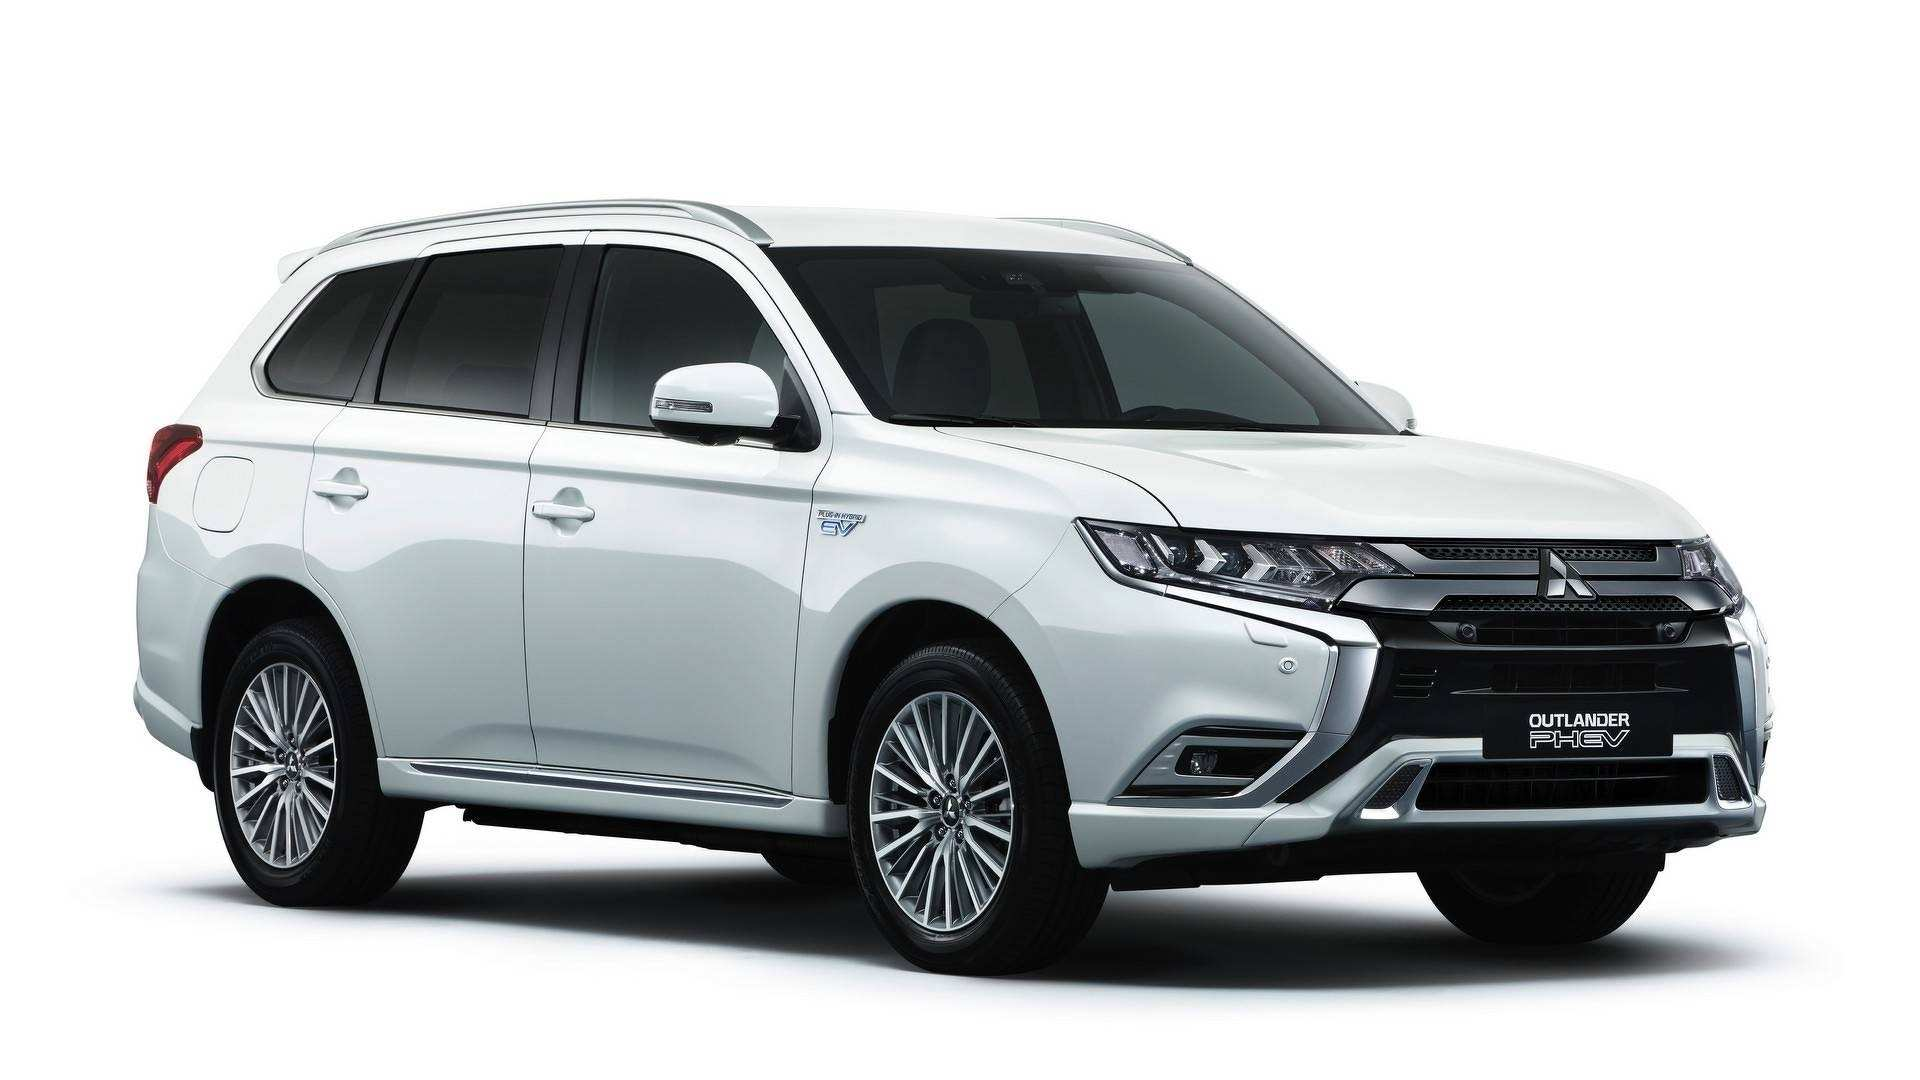 48 New 2020 Mitsubishi Outlander Sport Release Date Release Date And Concept